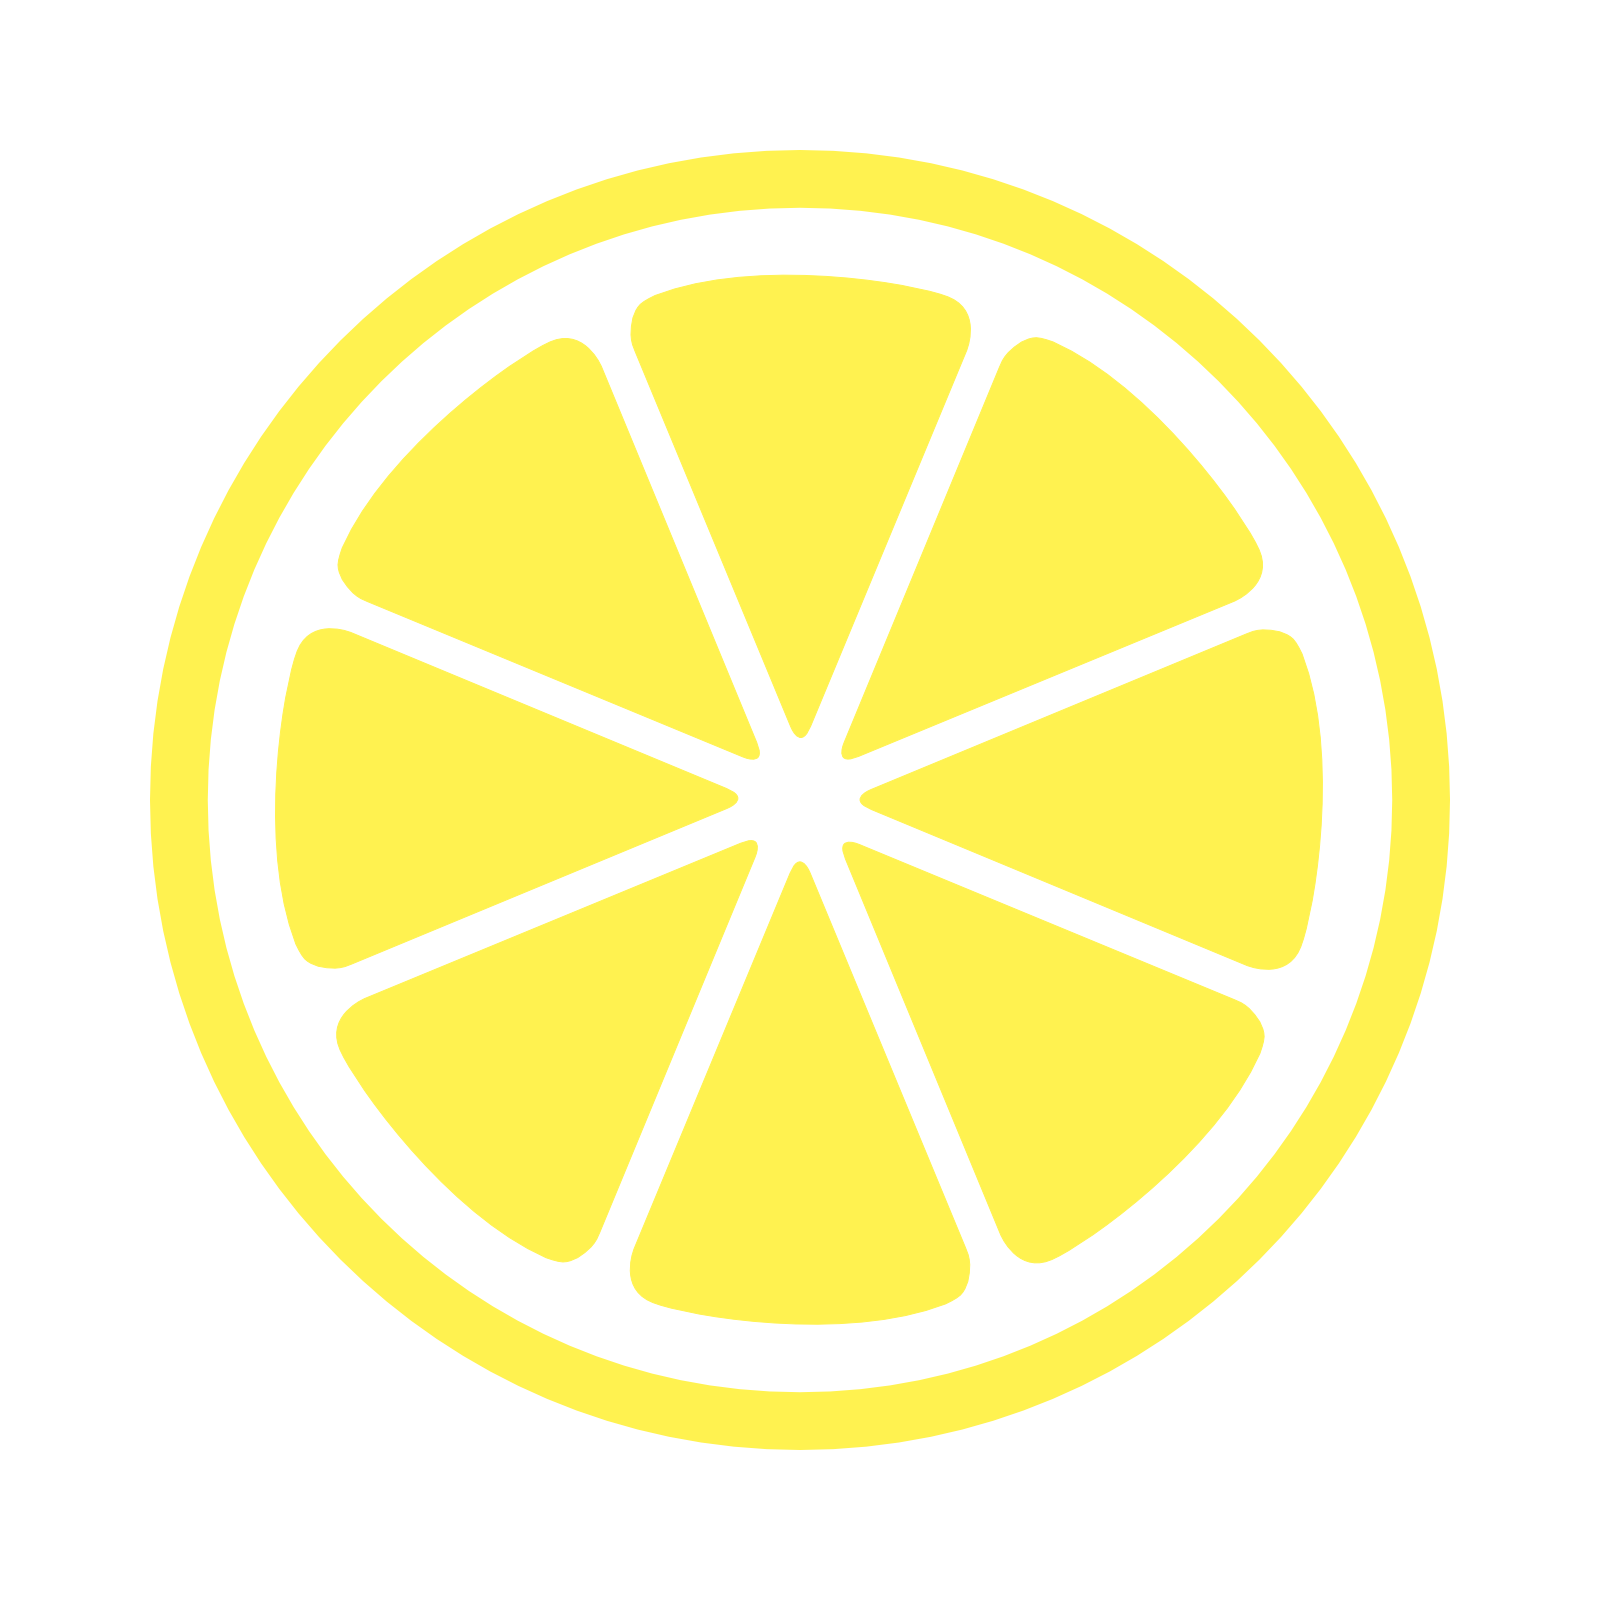 Lemon Juice Studios